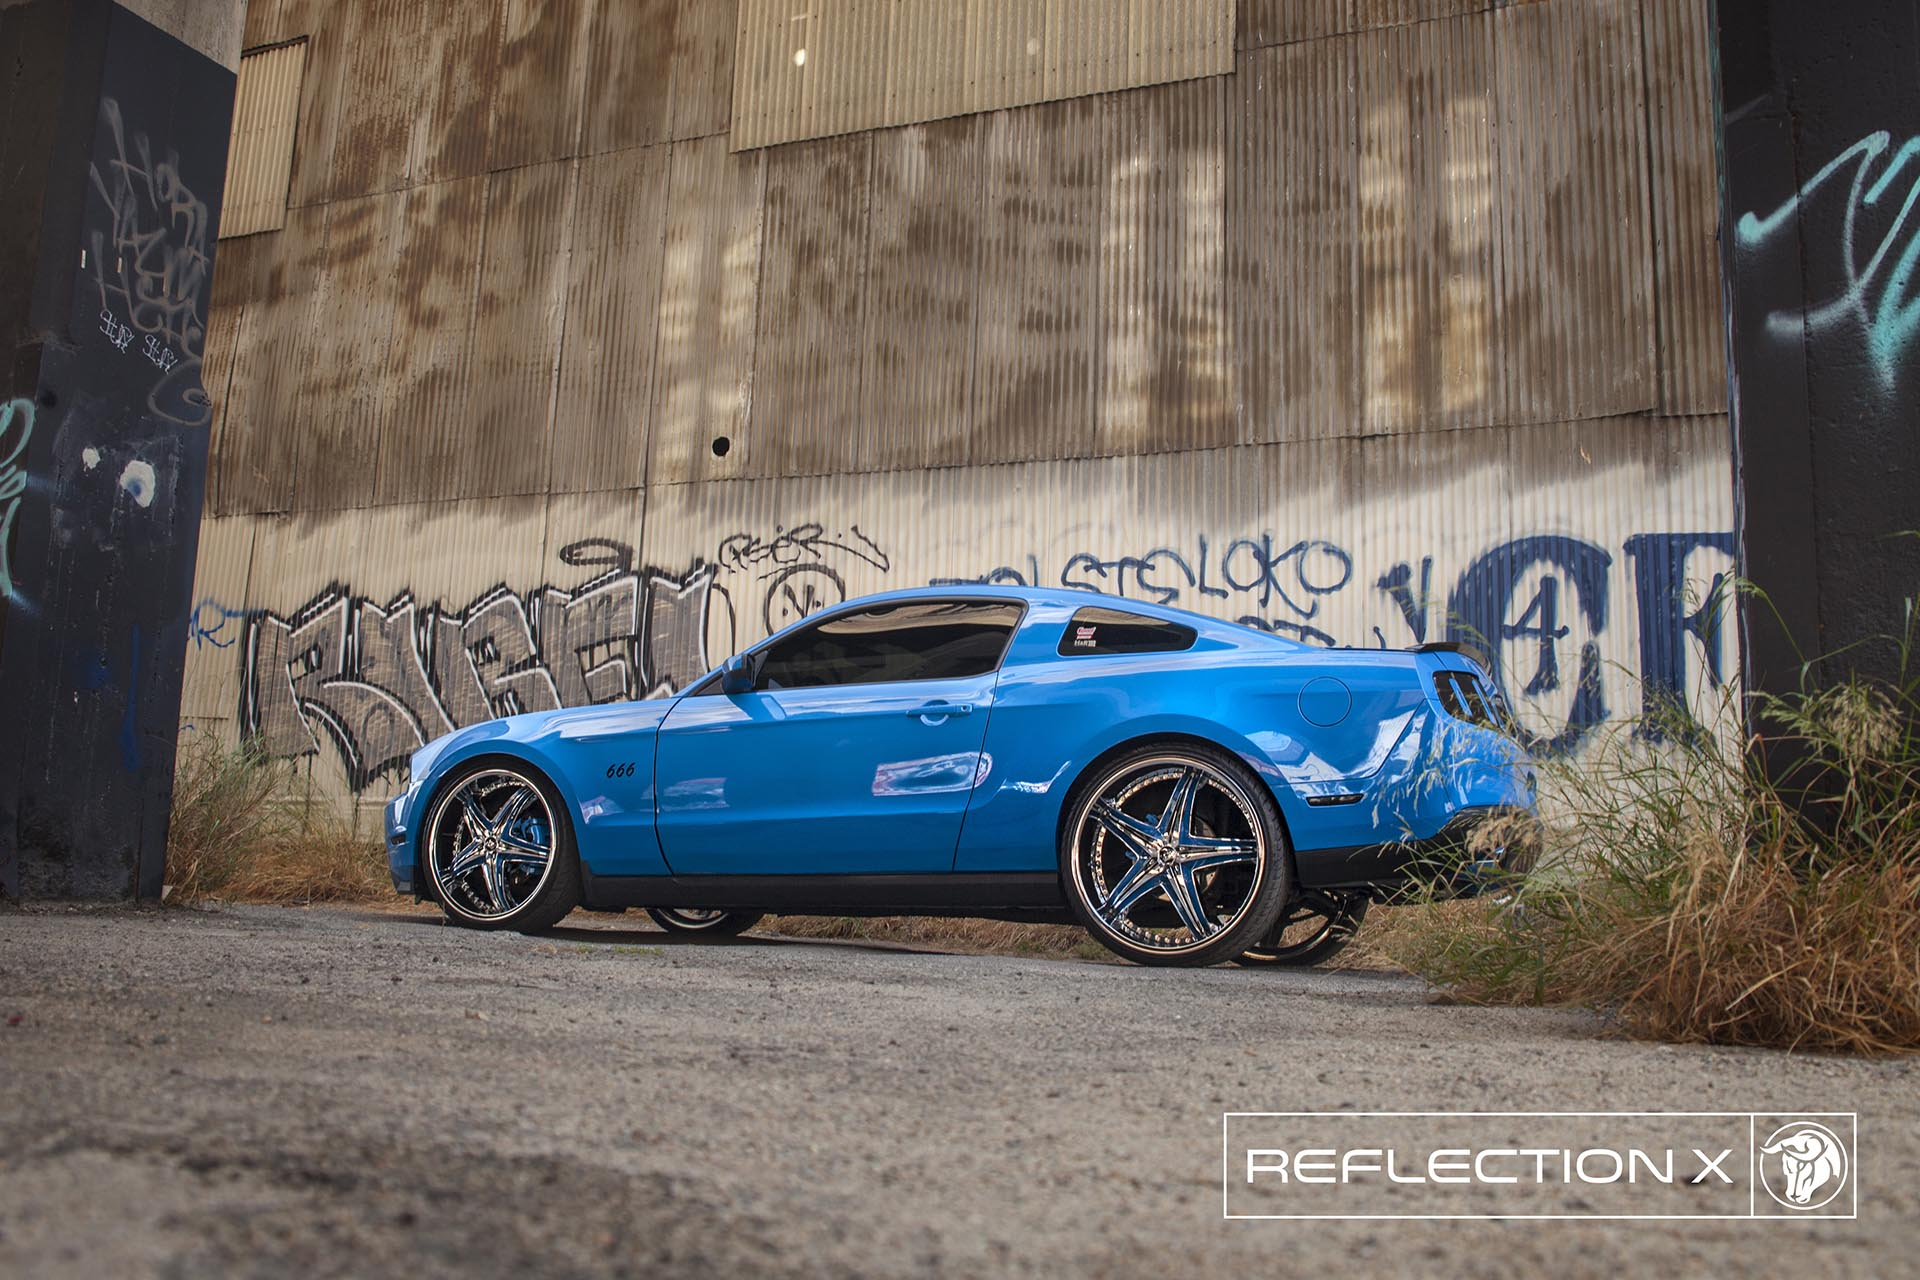 Diablo Reflection X Wheels on a Ford Mustang